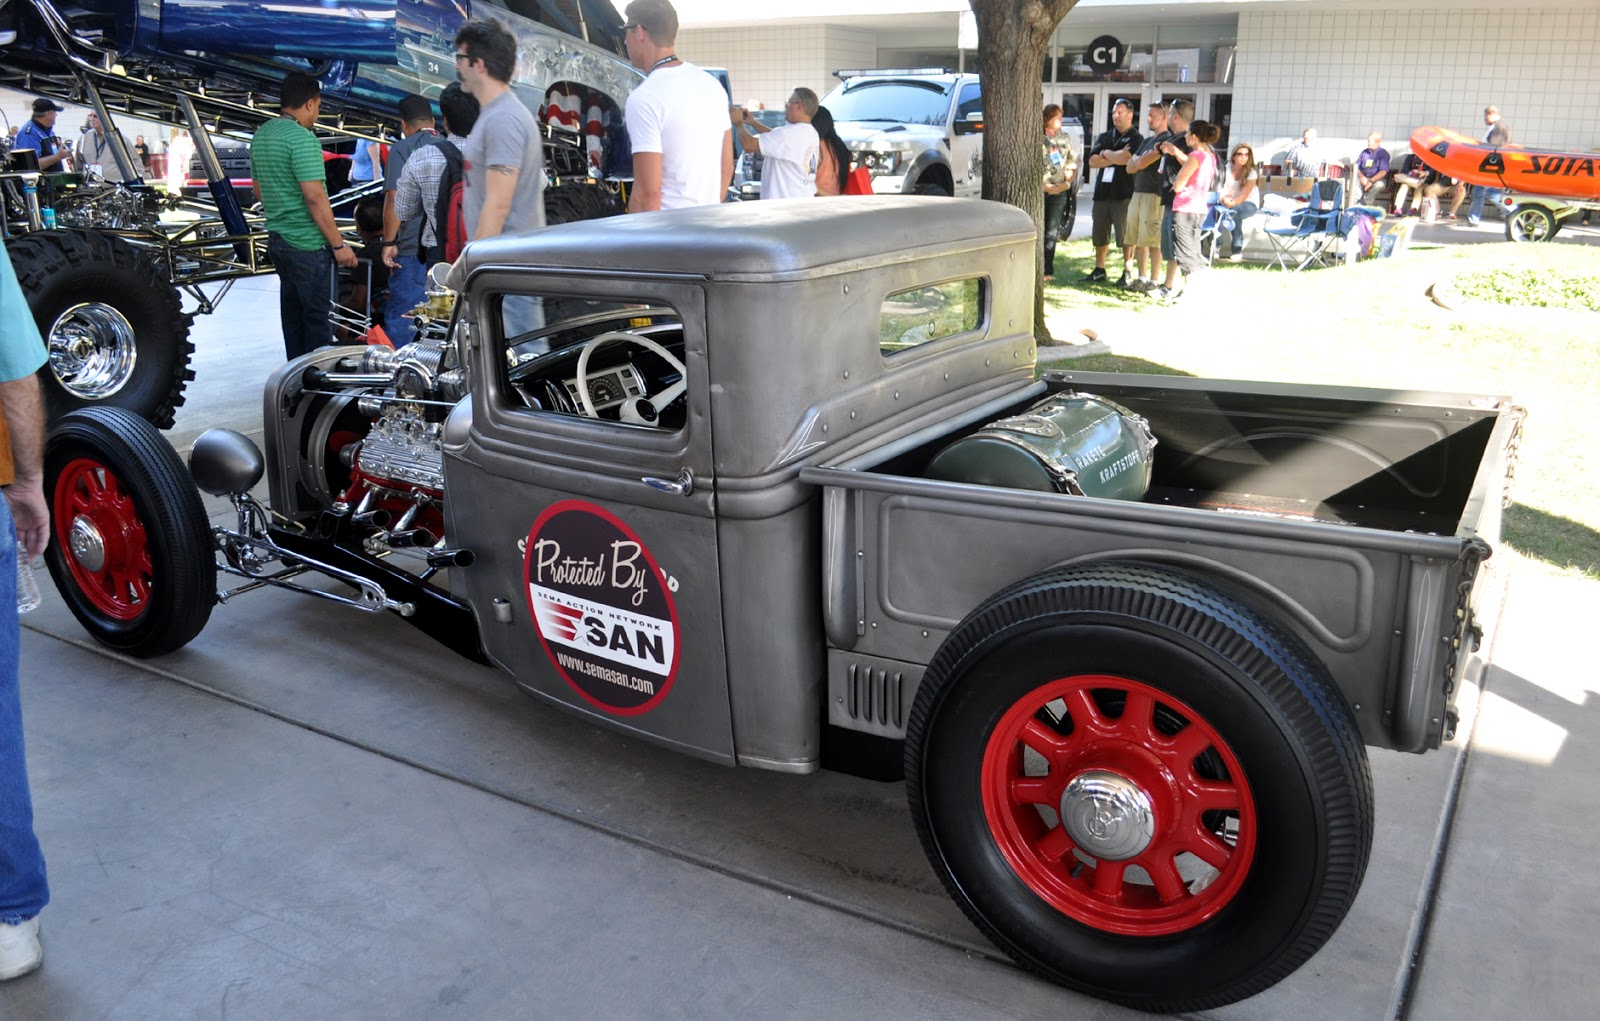 Just A Car Guy: nice hot rod, nothing on it tells us who did it, but ...